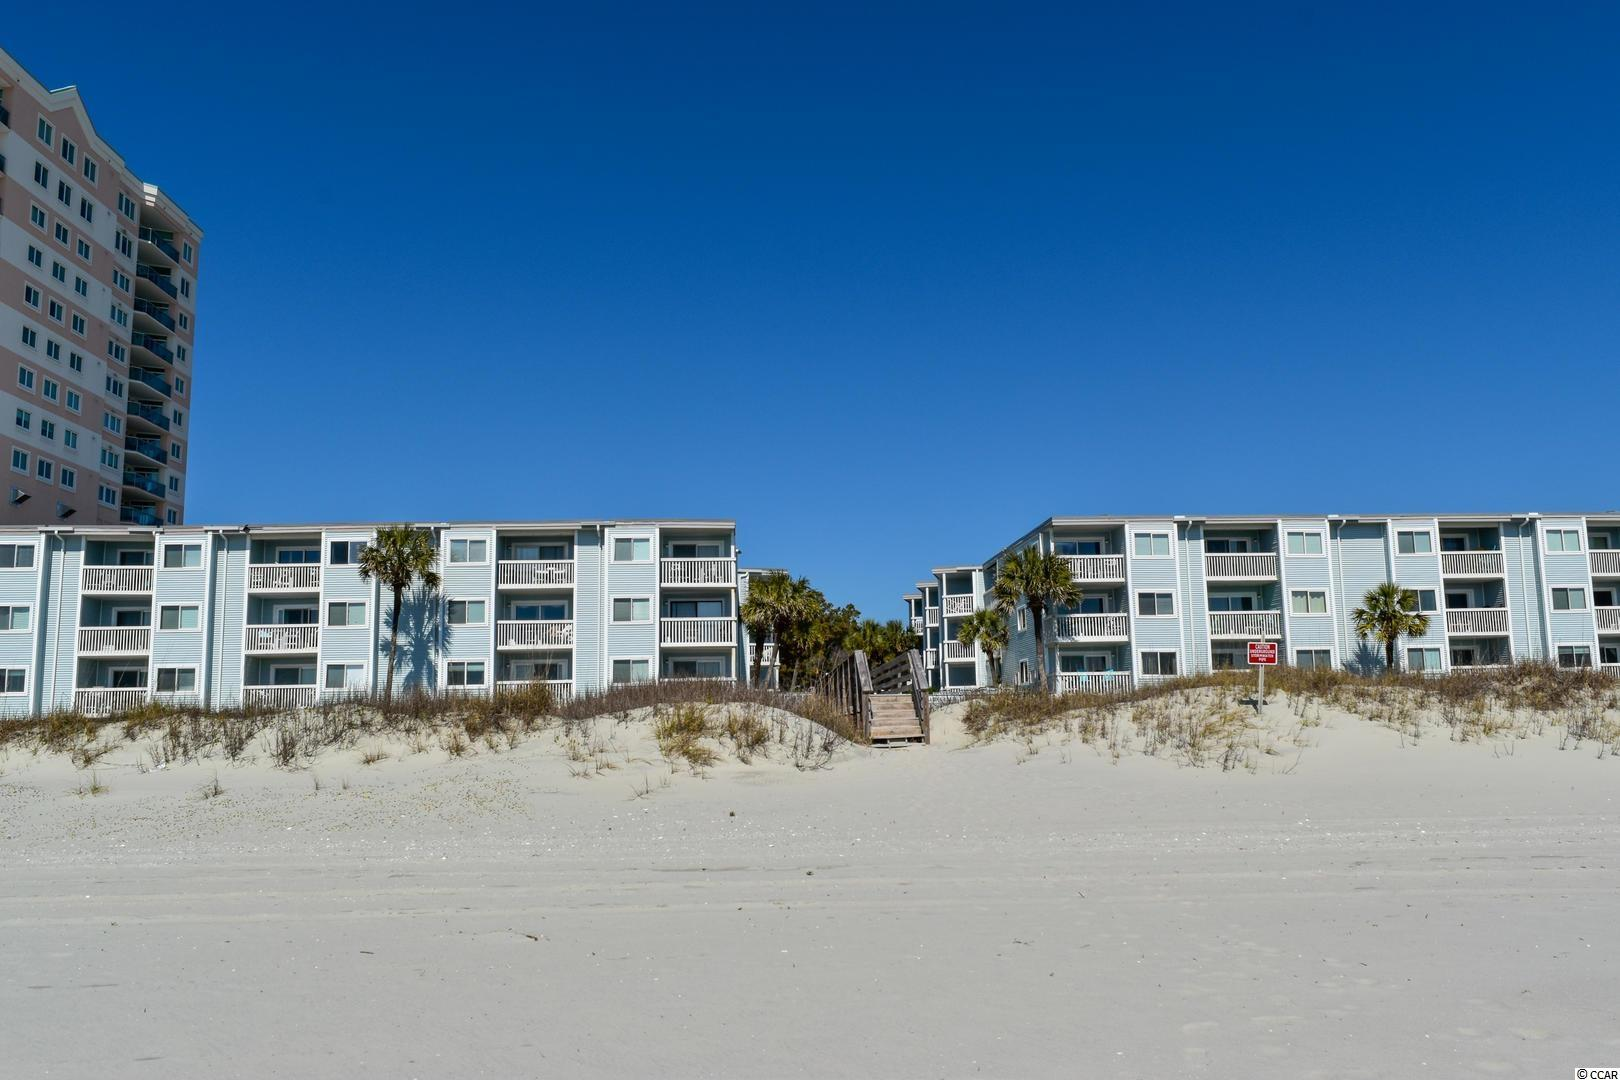 Ocean Garden Villas is in the perfect location! This immaculate unit will have you never wanting to leave the beach! This 2 bedroom 2 bath unit features gorgeous wood floors and beautifully decorated. Enjoy sitting on your balcony and watching the waves roll in. The beach has so much to offer with all the shopping, golf, dinning and entertainment. Great opportunity for your own place at the beach, rental or investment.